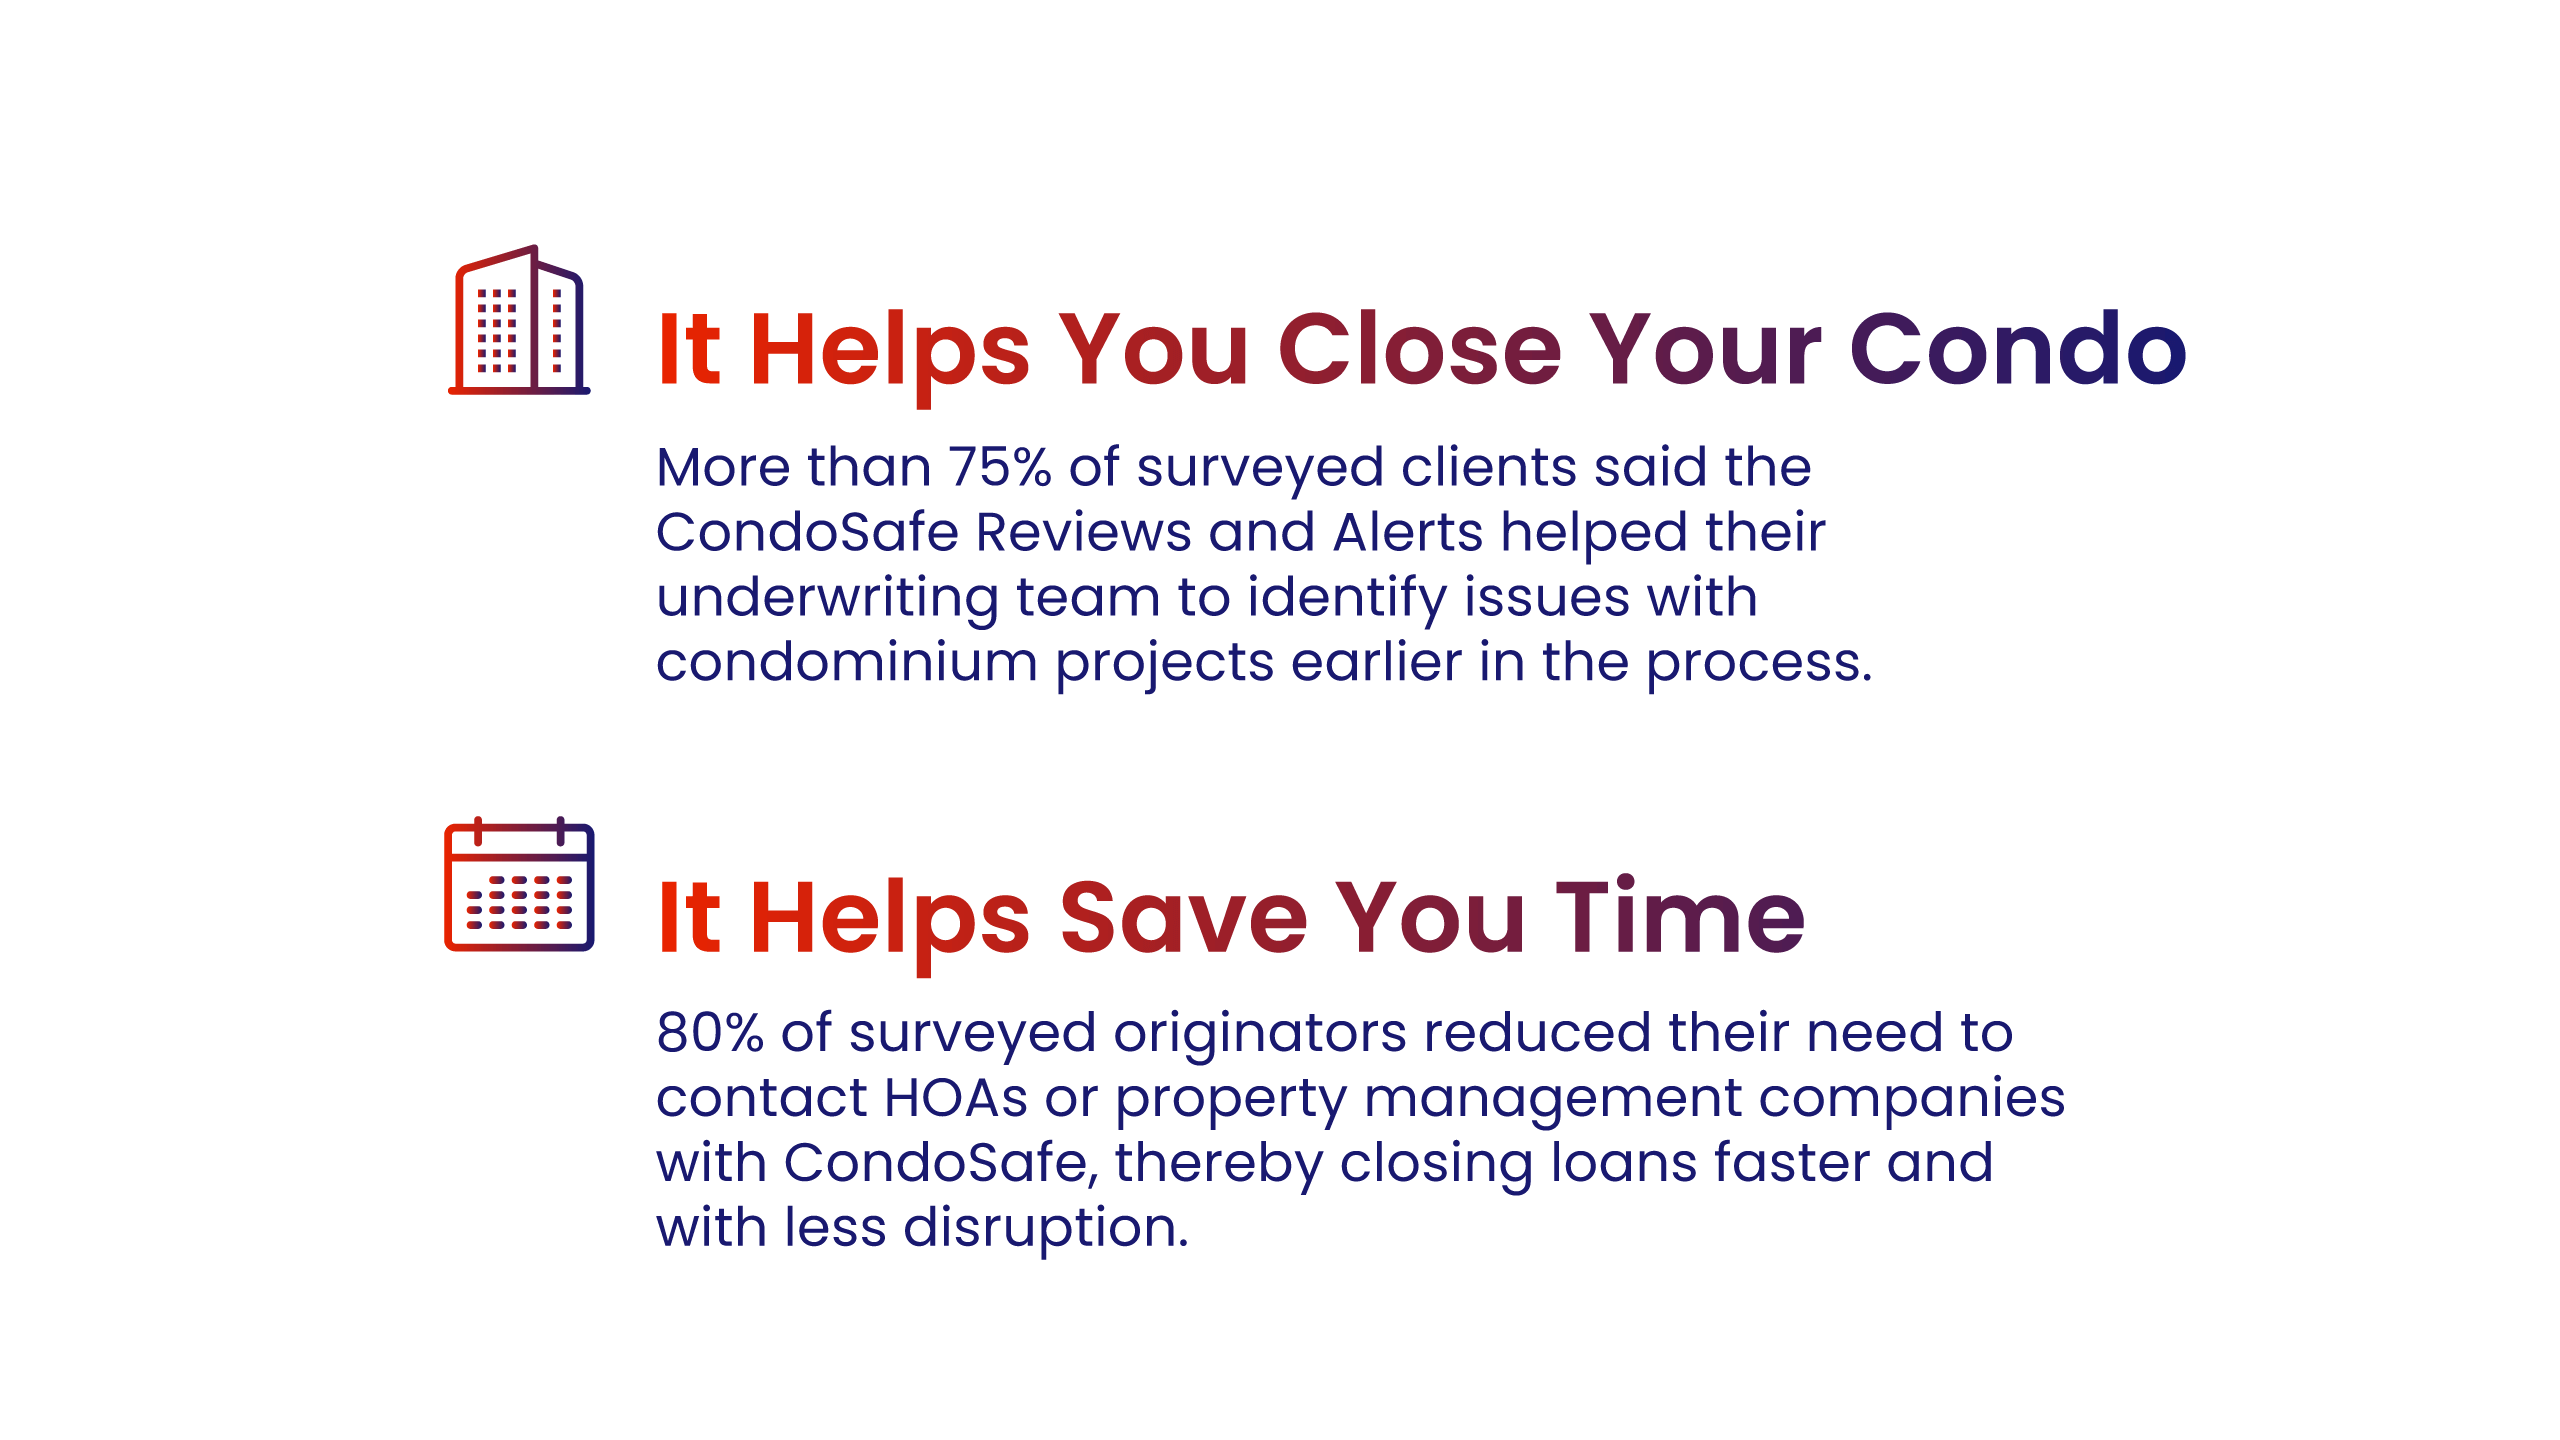 CoreLogic Digital Mortgage Collateral Solutions - Simplified Condo Project Data Collection to Maximize your Profits